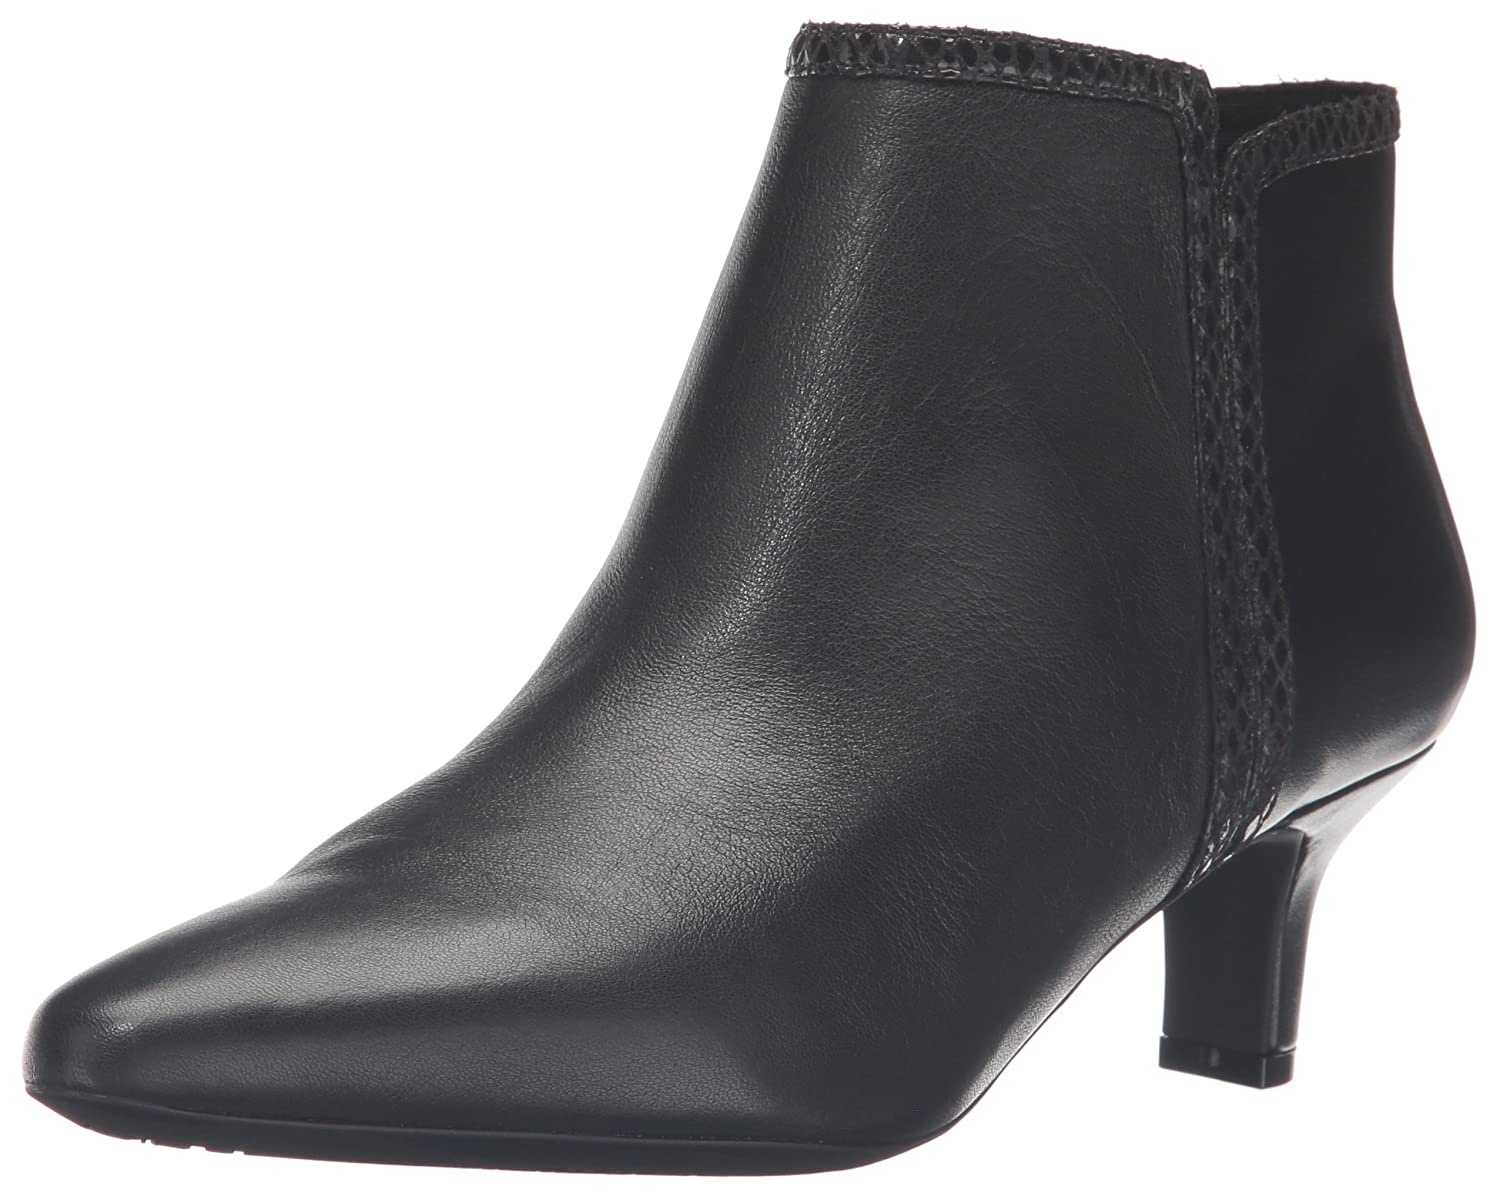 Rockport Women's Kimly Ankle Bootie B01D3NMGFC 10 B(M) US|Black Leather